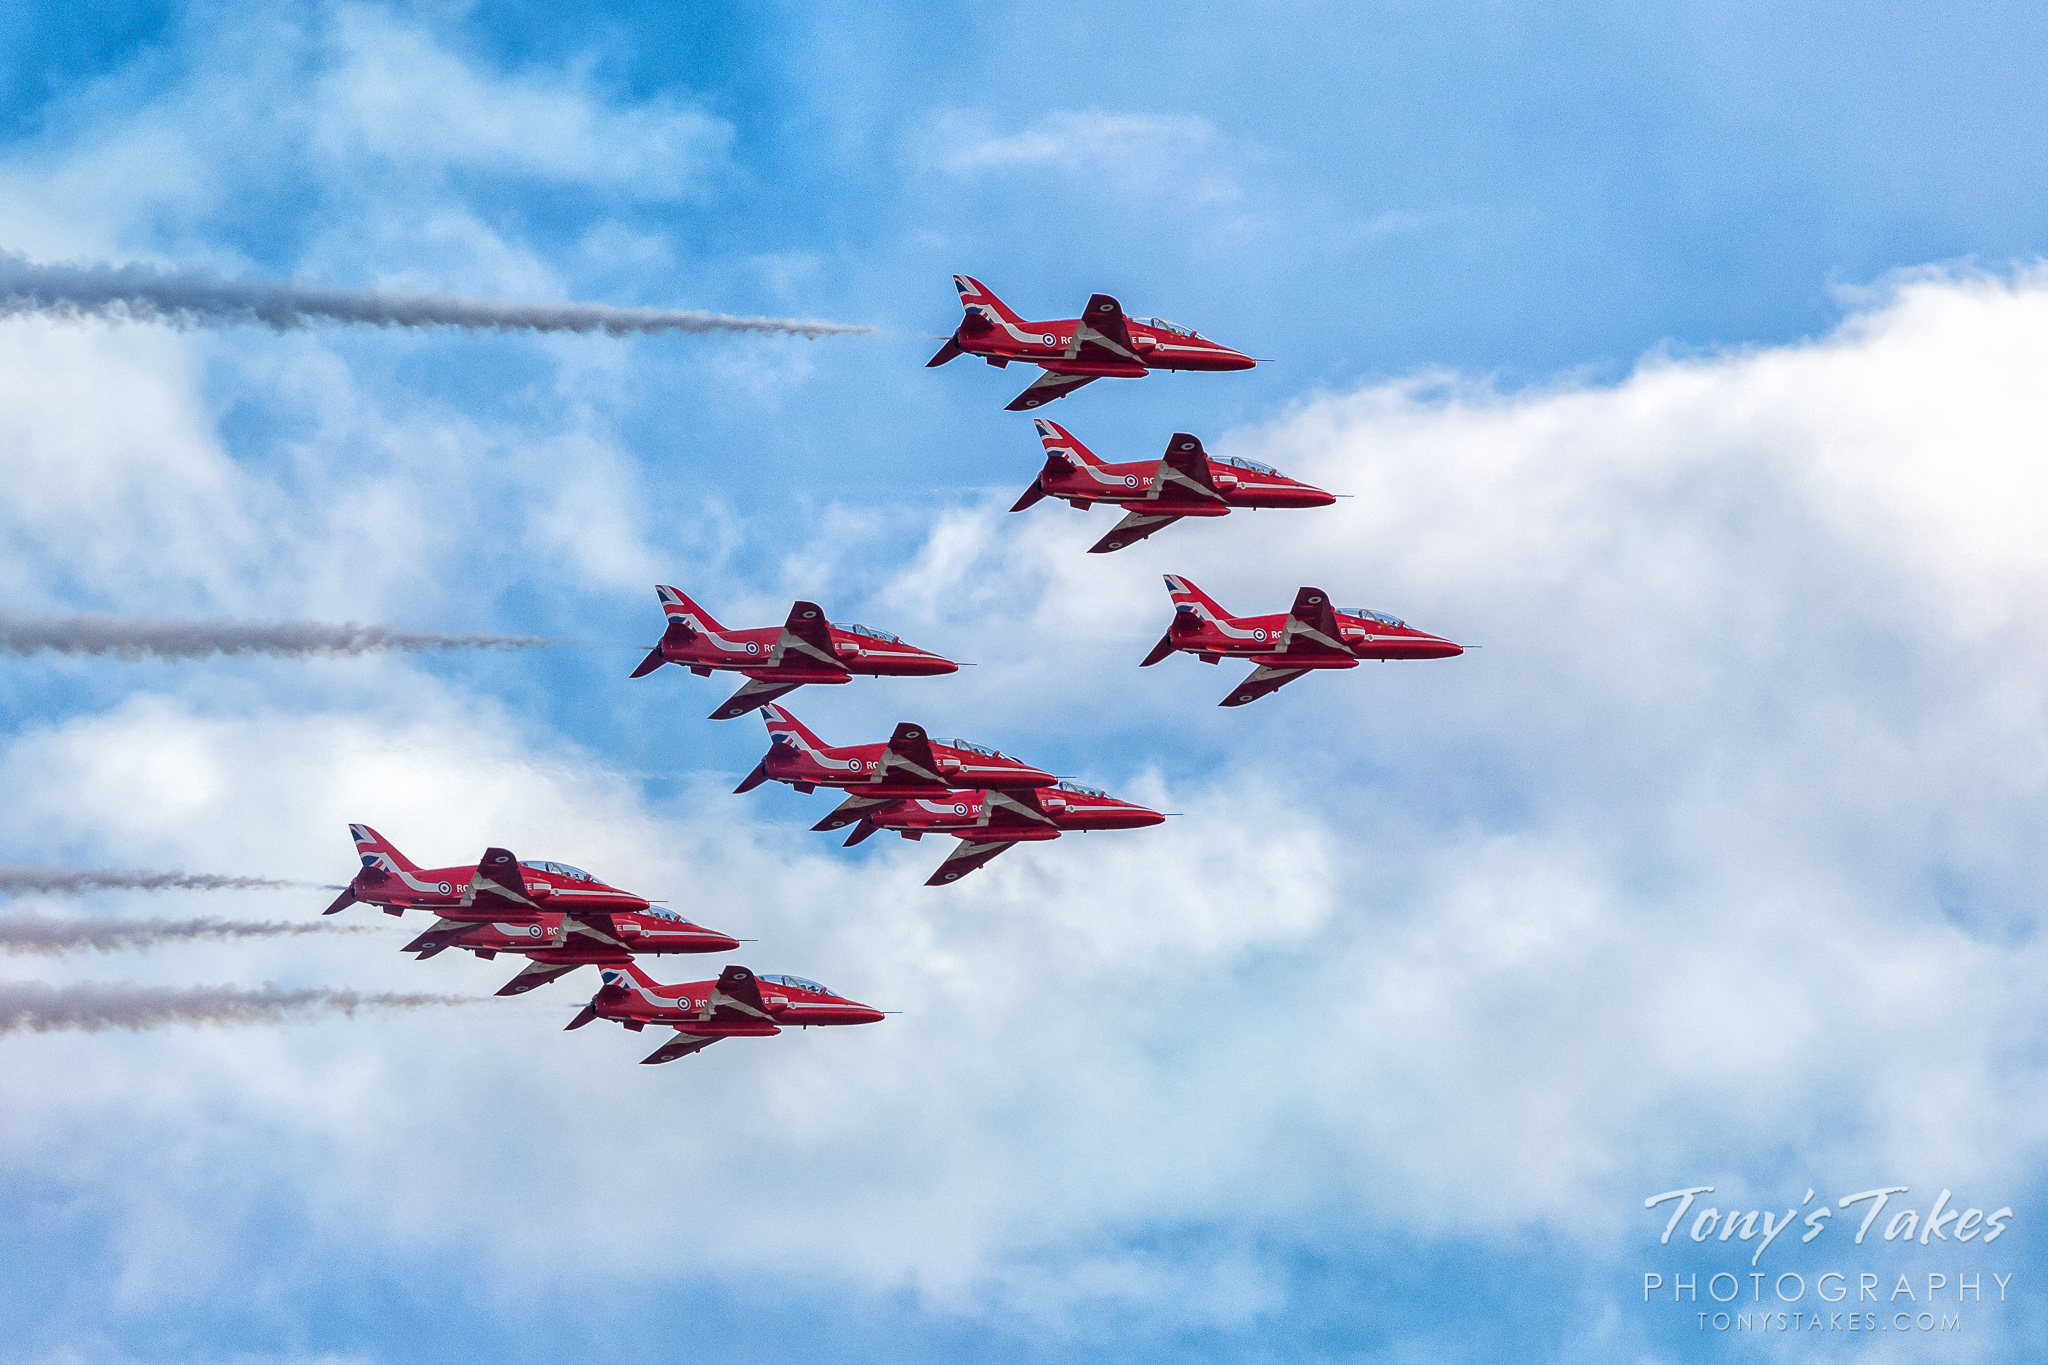 The Royal Air Force Red Arrows in formation. (© Tony's Takes)